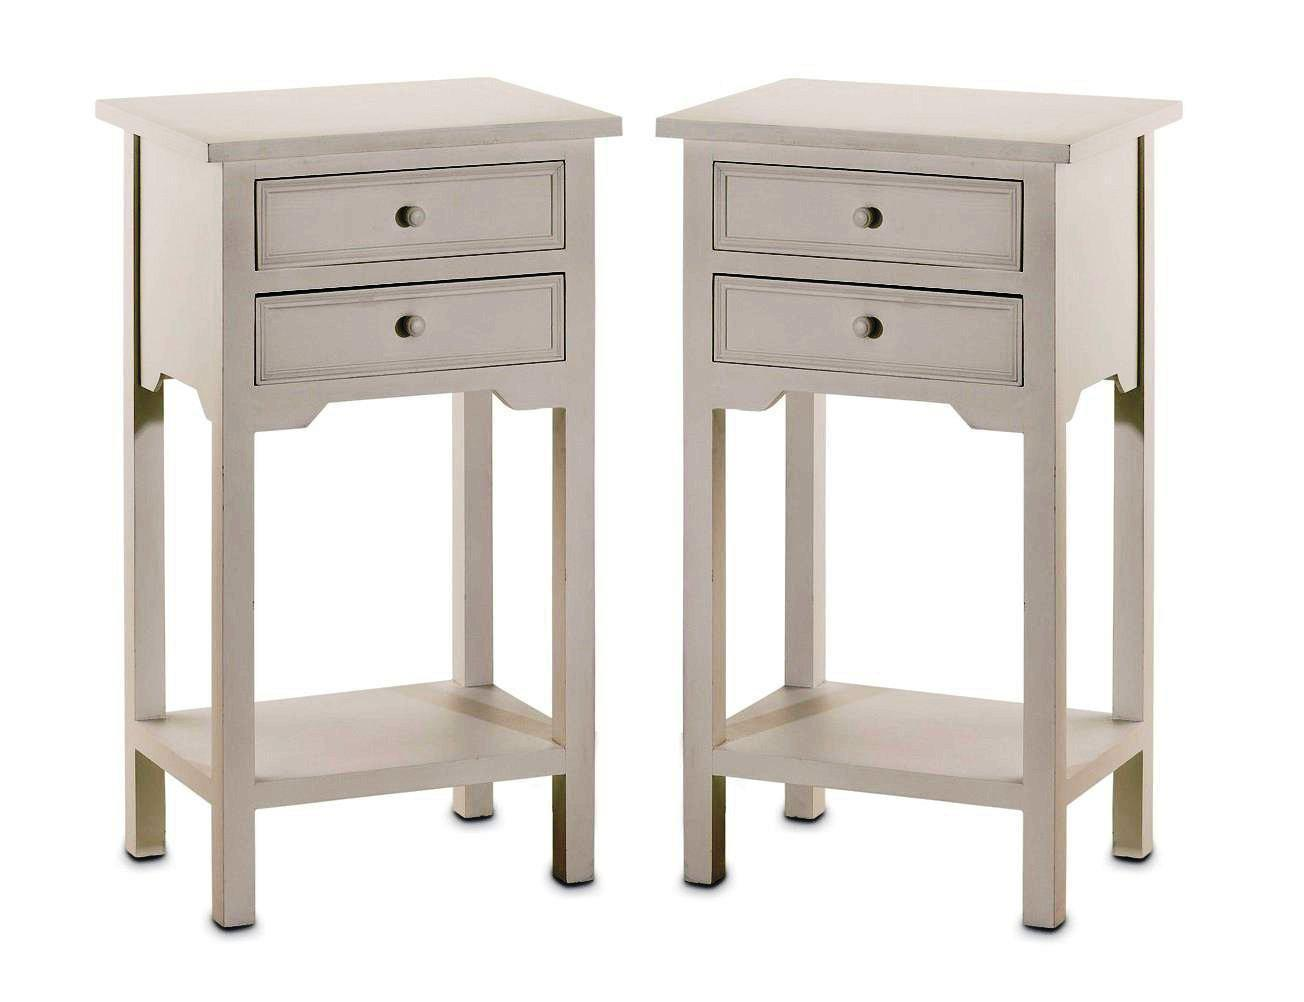 Target Bedside Table | Narrow Nightstand | Nightstands Clearance